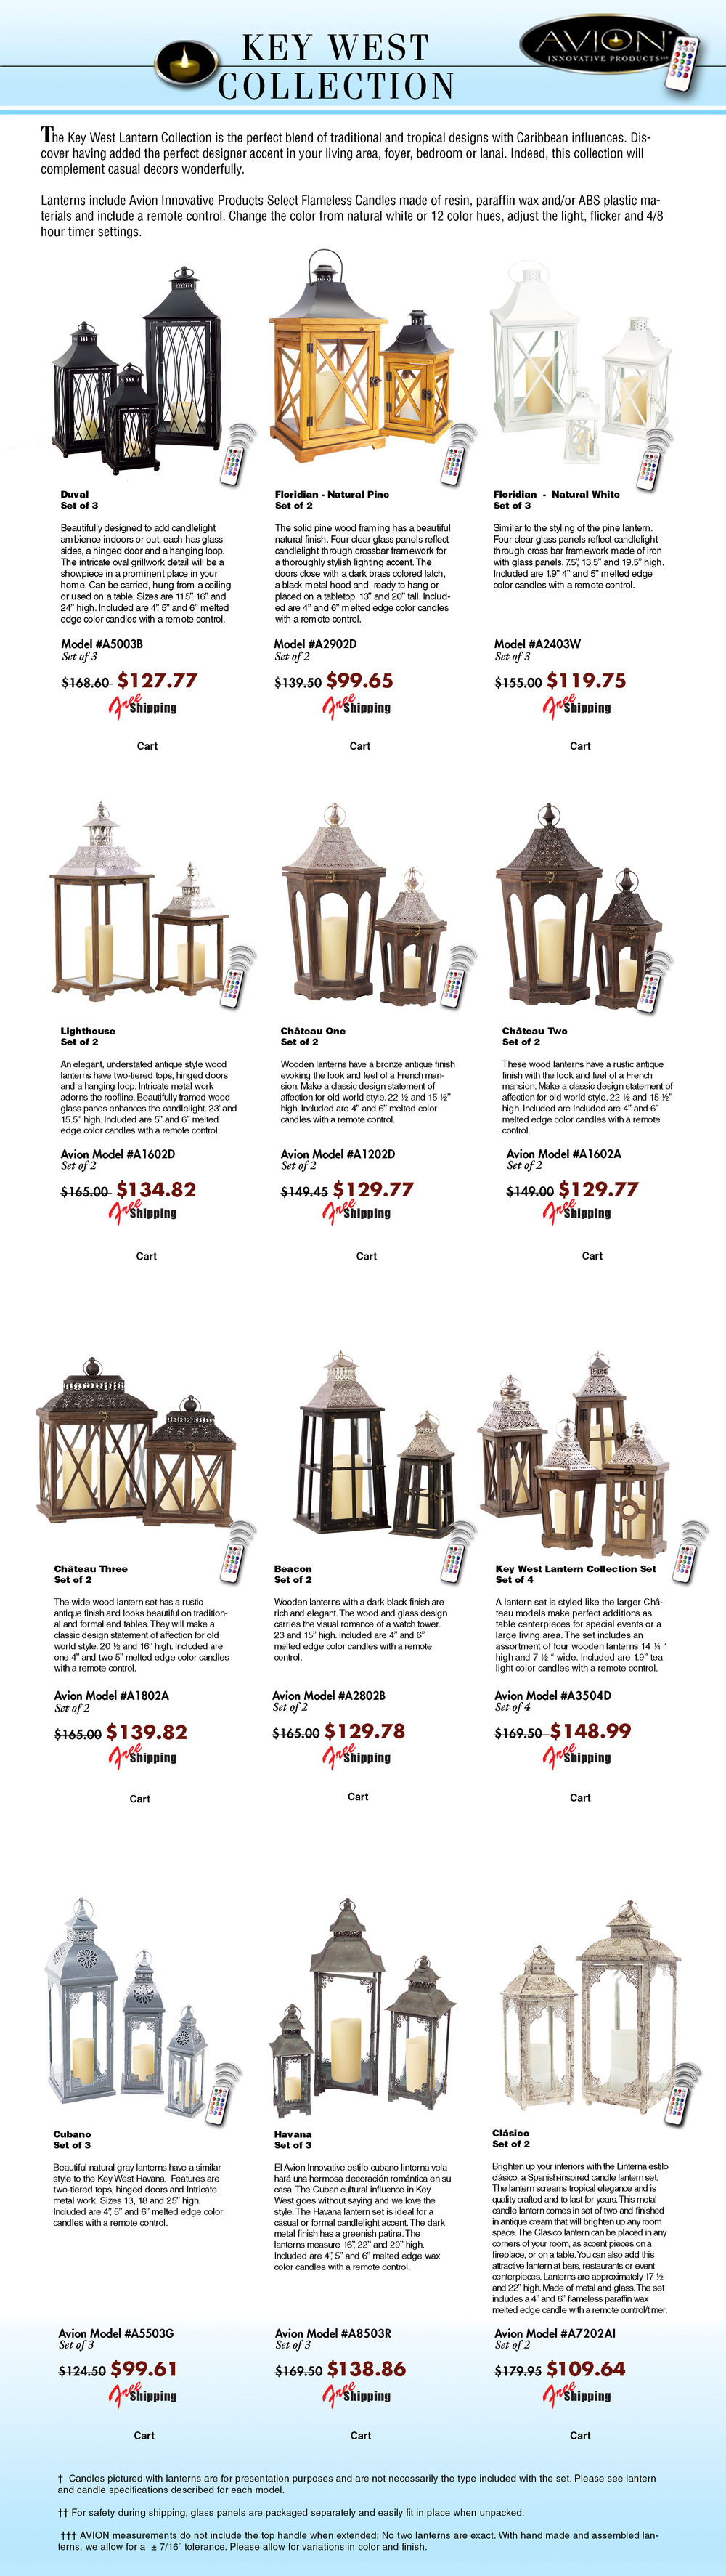 Specification sheet for avioninnovative candle lantern. The Avion collection features quality metal lanterns, wood lanterns, stainless steel lanterns from melrose, classic, traditional, modern imax, tropical urban trends, cottage style lanterns like pottery barn, gerson everlasting glow motion flame LED candles; color candles from mooncandles, Kohree, like luminara, candle lamps plus wax. The package price list includes LED battery operated candles, flameless candles, a remote control timer, candle change colors 12 different colors by remote